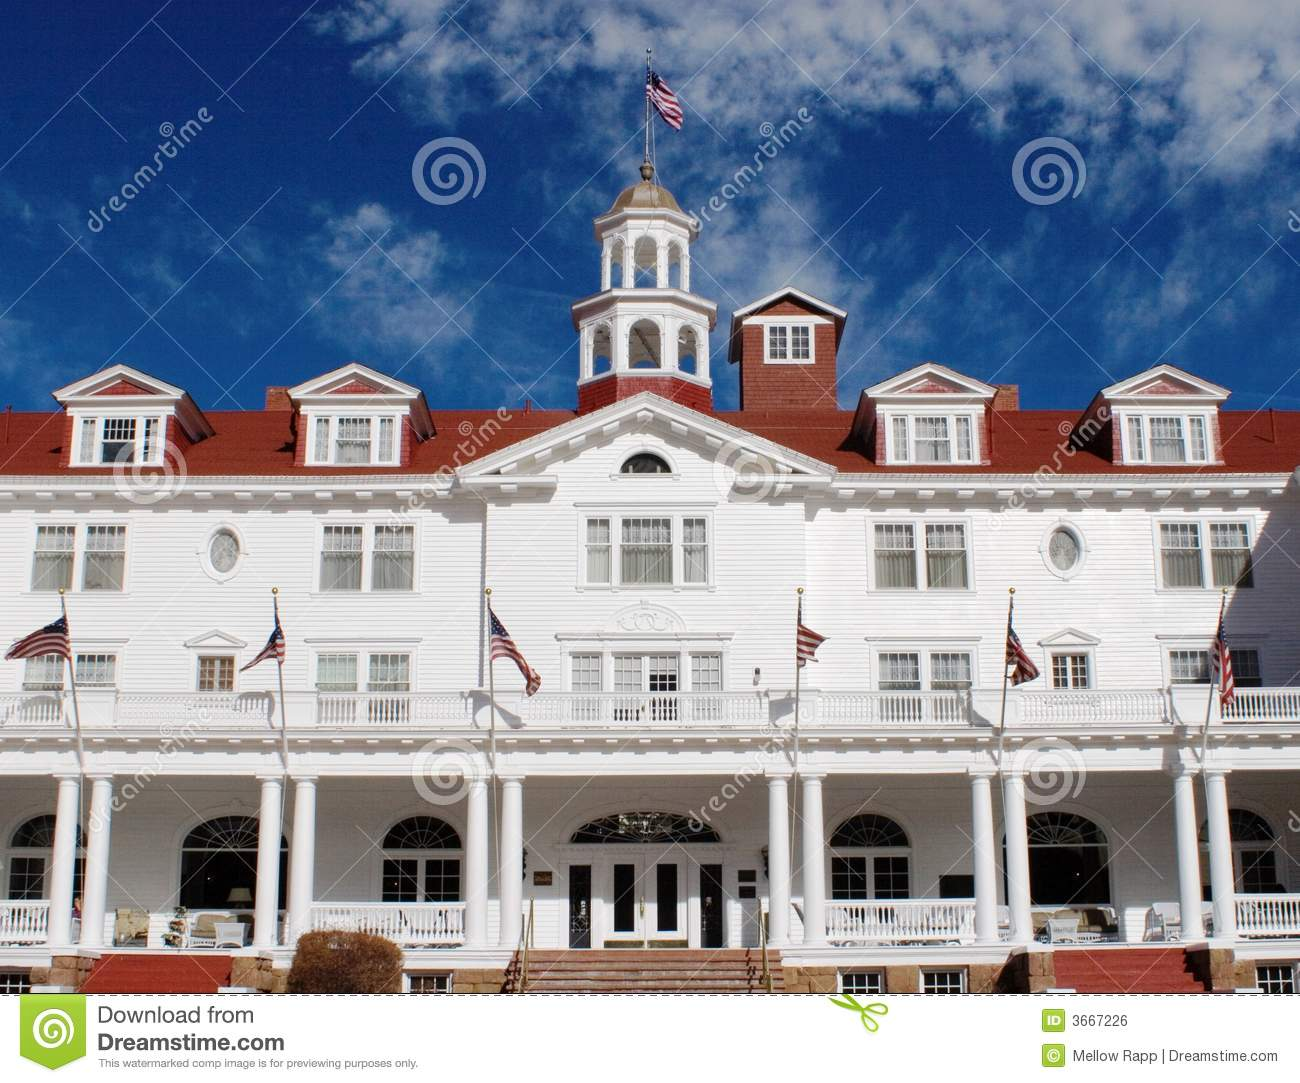 Stanley hotel front royalty free stock image image 3667226 for Stanley home design software free download